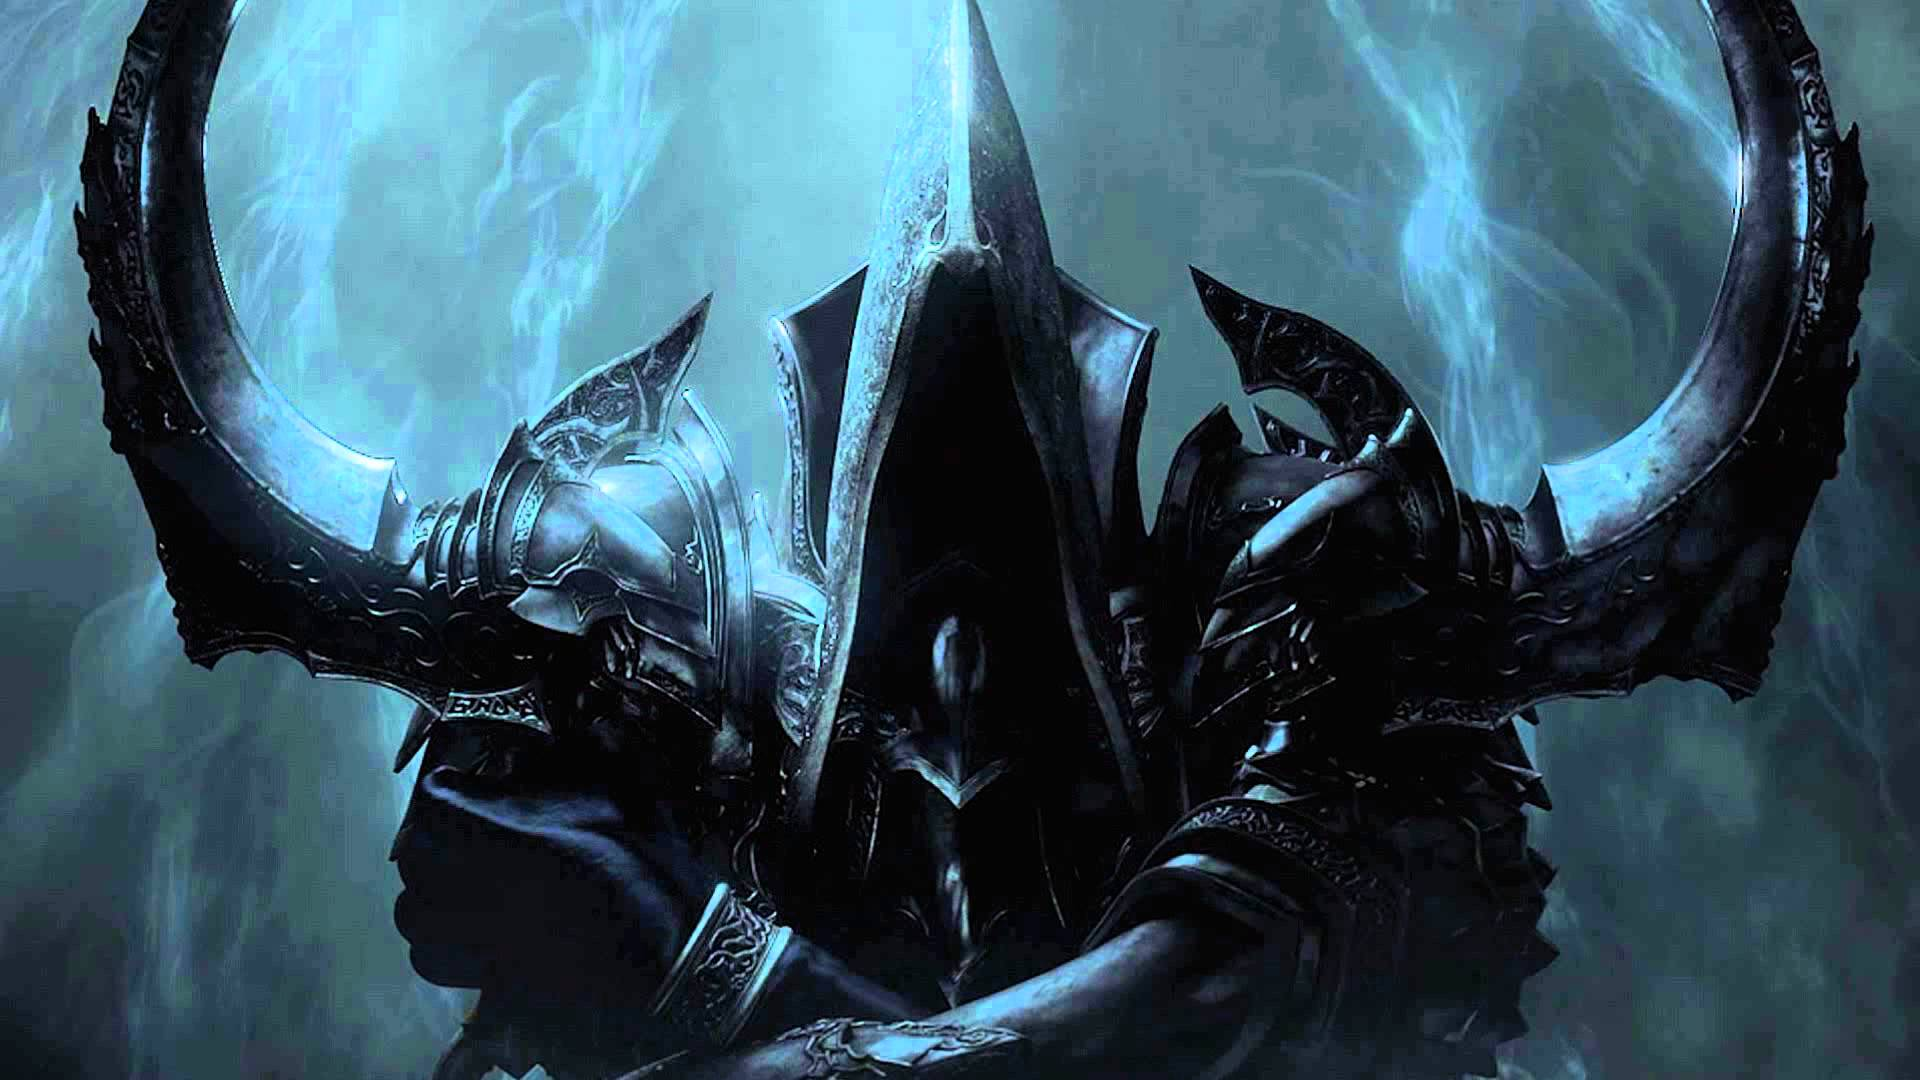 Malthael, Diablo III, Heroes of the Storm